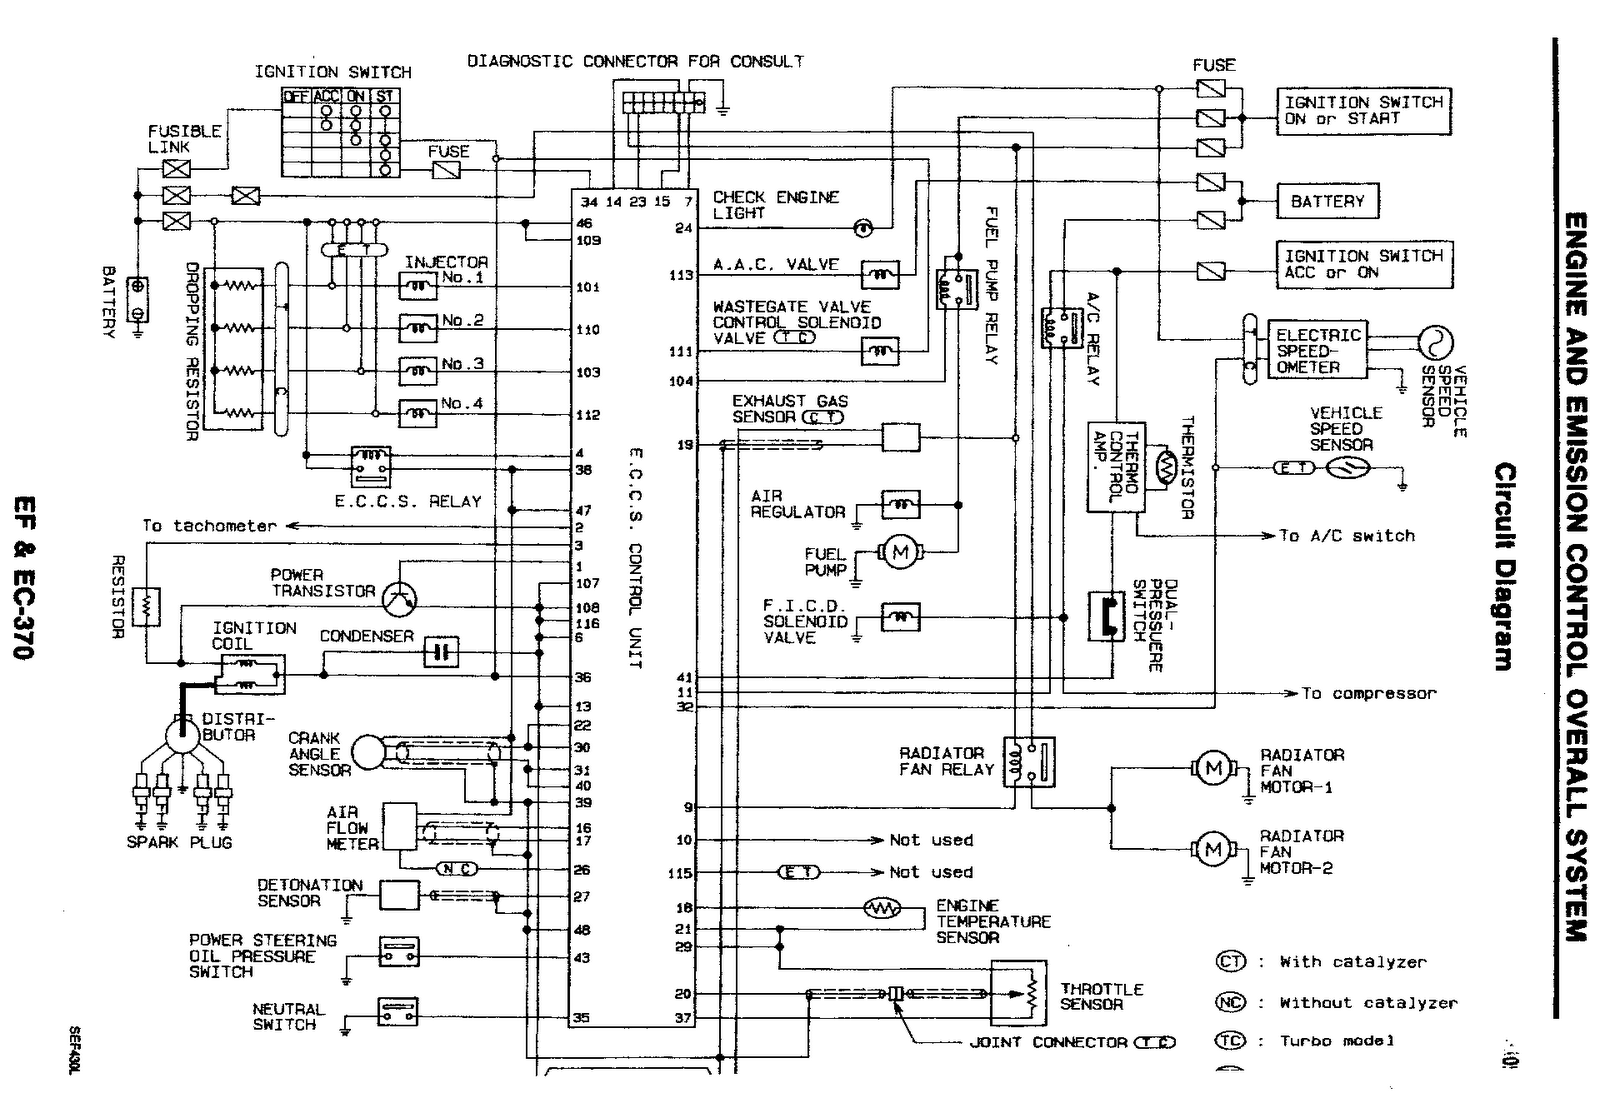 1998 Audi A4 Wiring Diagram · Audi TT Fuse Box Diagram